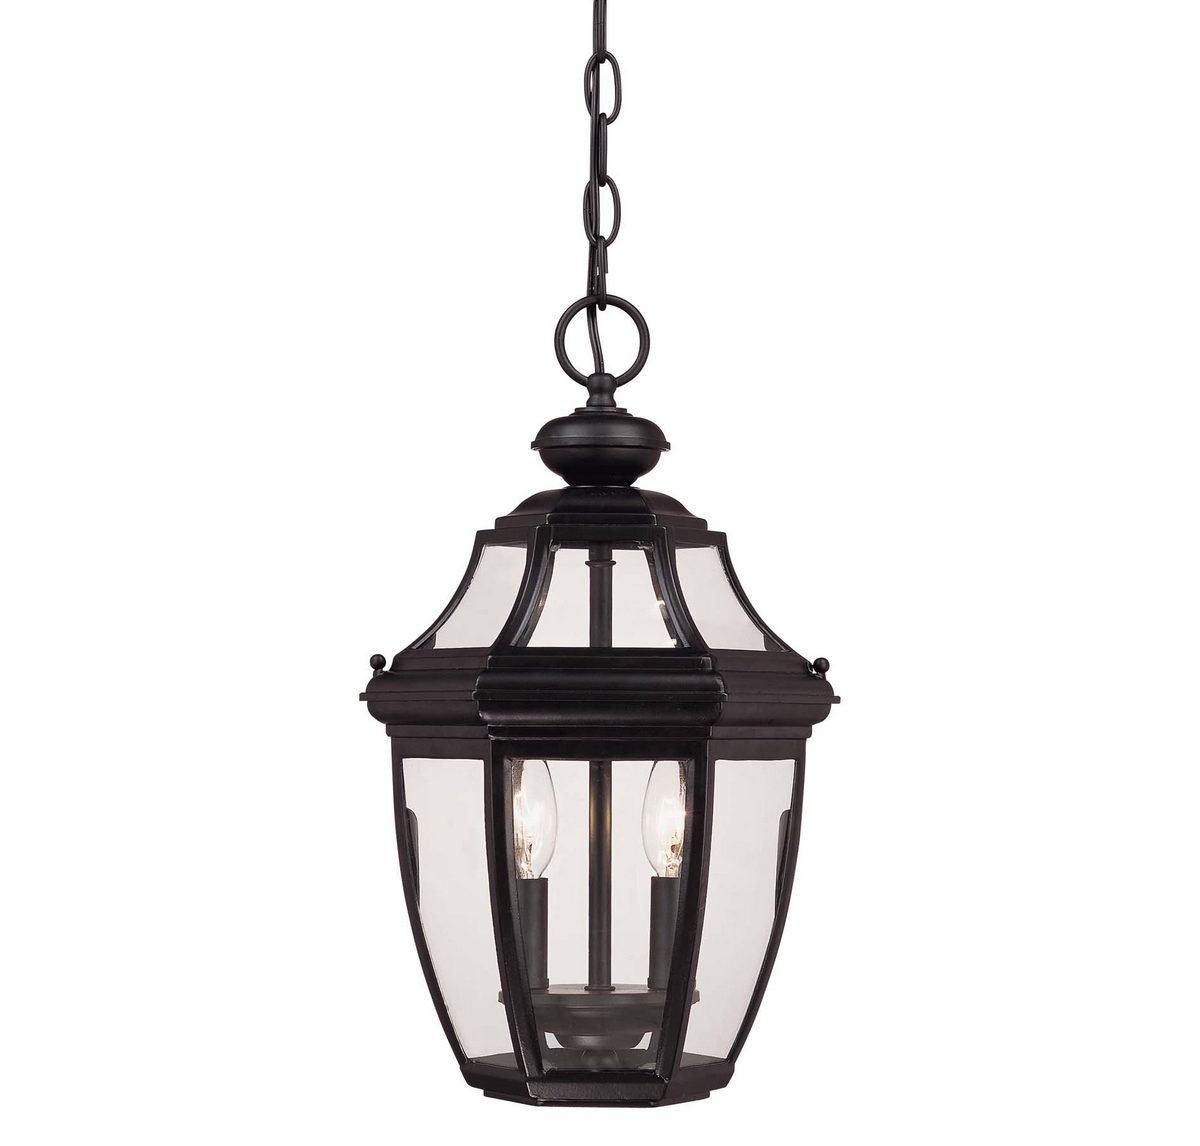 Savoy House Lighting 5-494-BK Endorado Collection 2-Light Outdoor Hanging Entry Lantern, Black Finish with Clear Glass